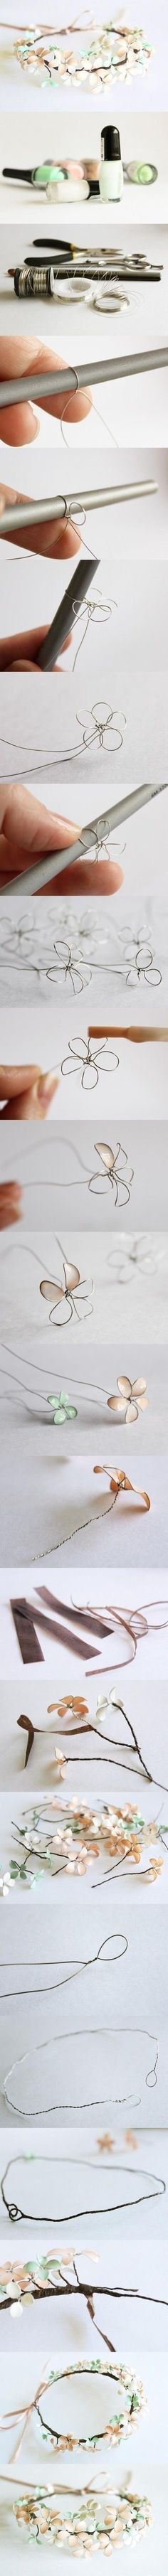 With Thin Wire And Nail Polish To Do Some Pretty Flowers - Click for More...